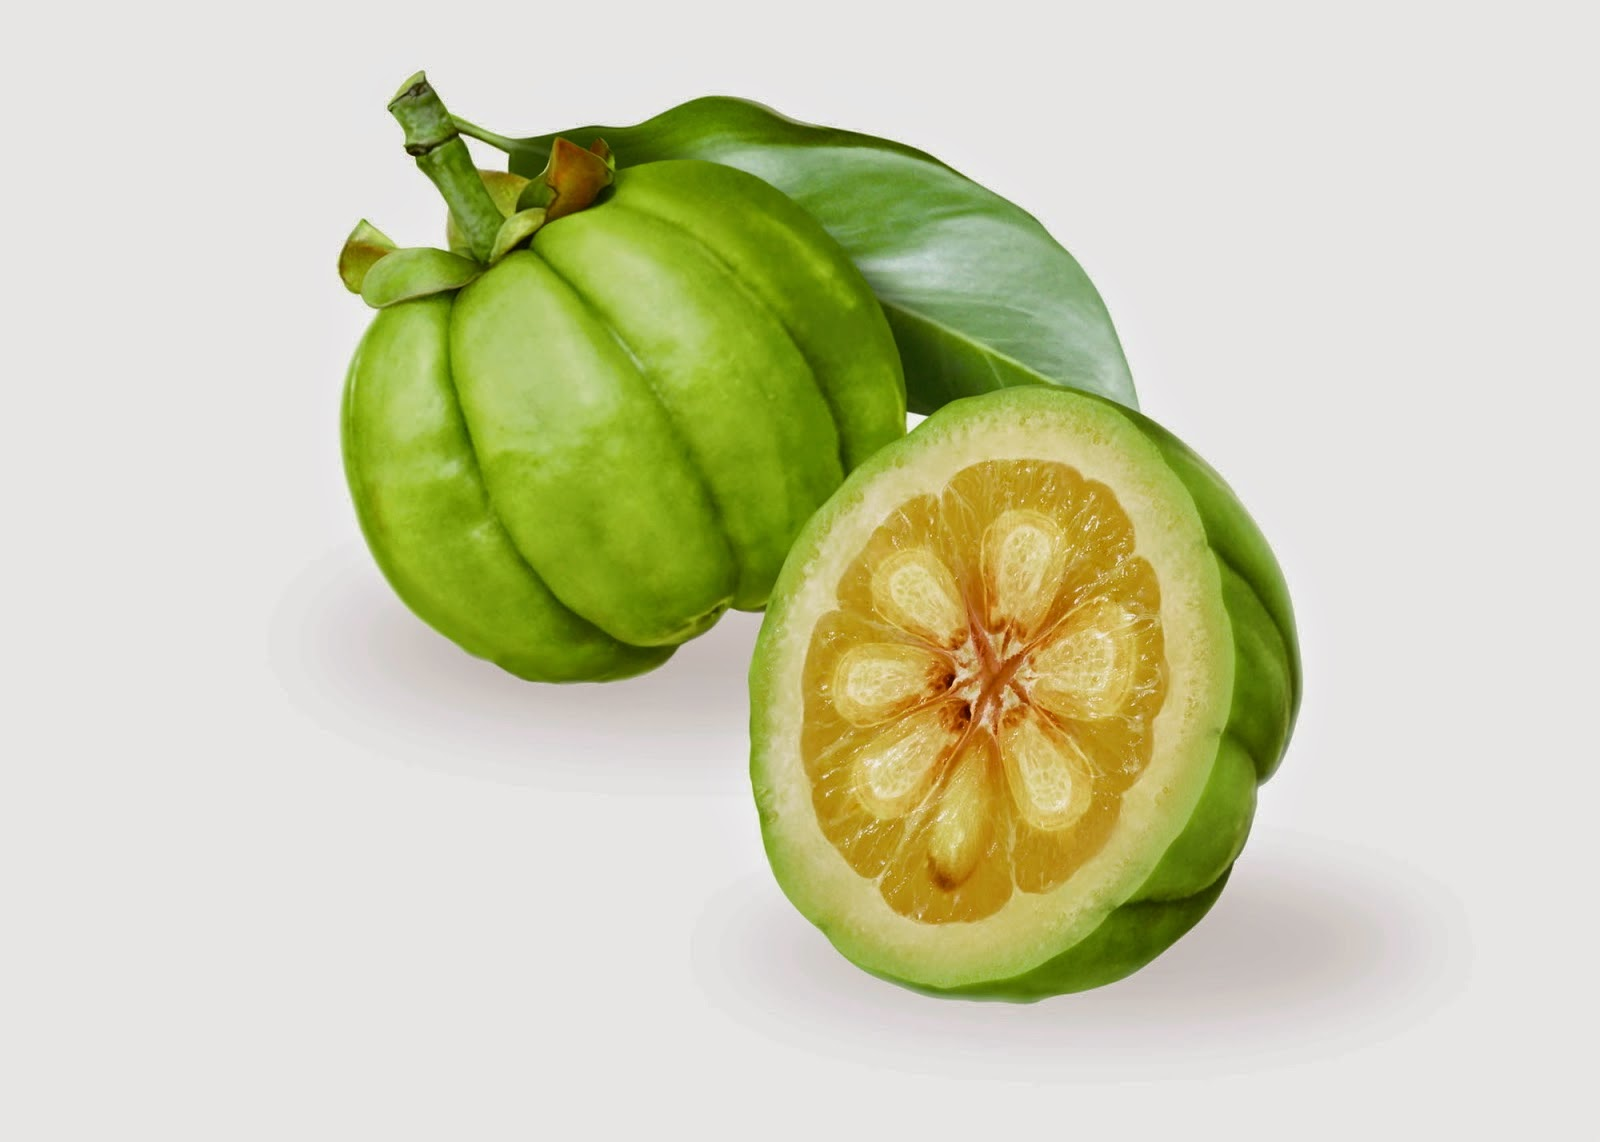 Where to buy 100 percent pure garcinia cambogia image 10